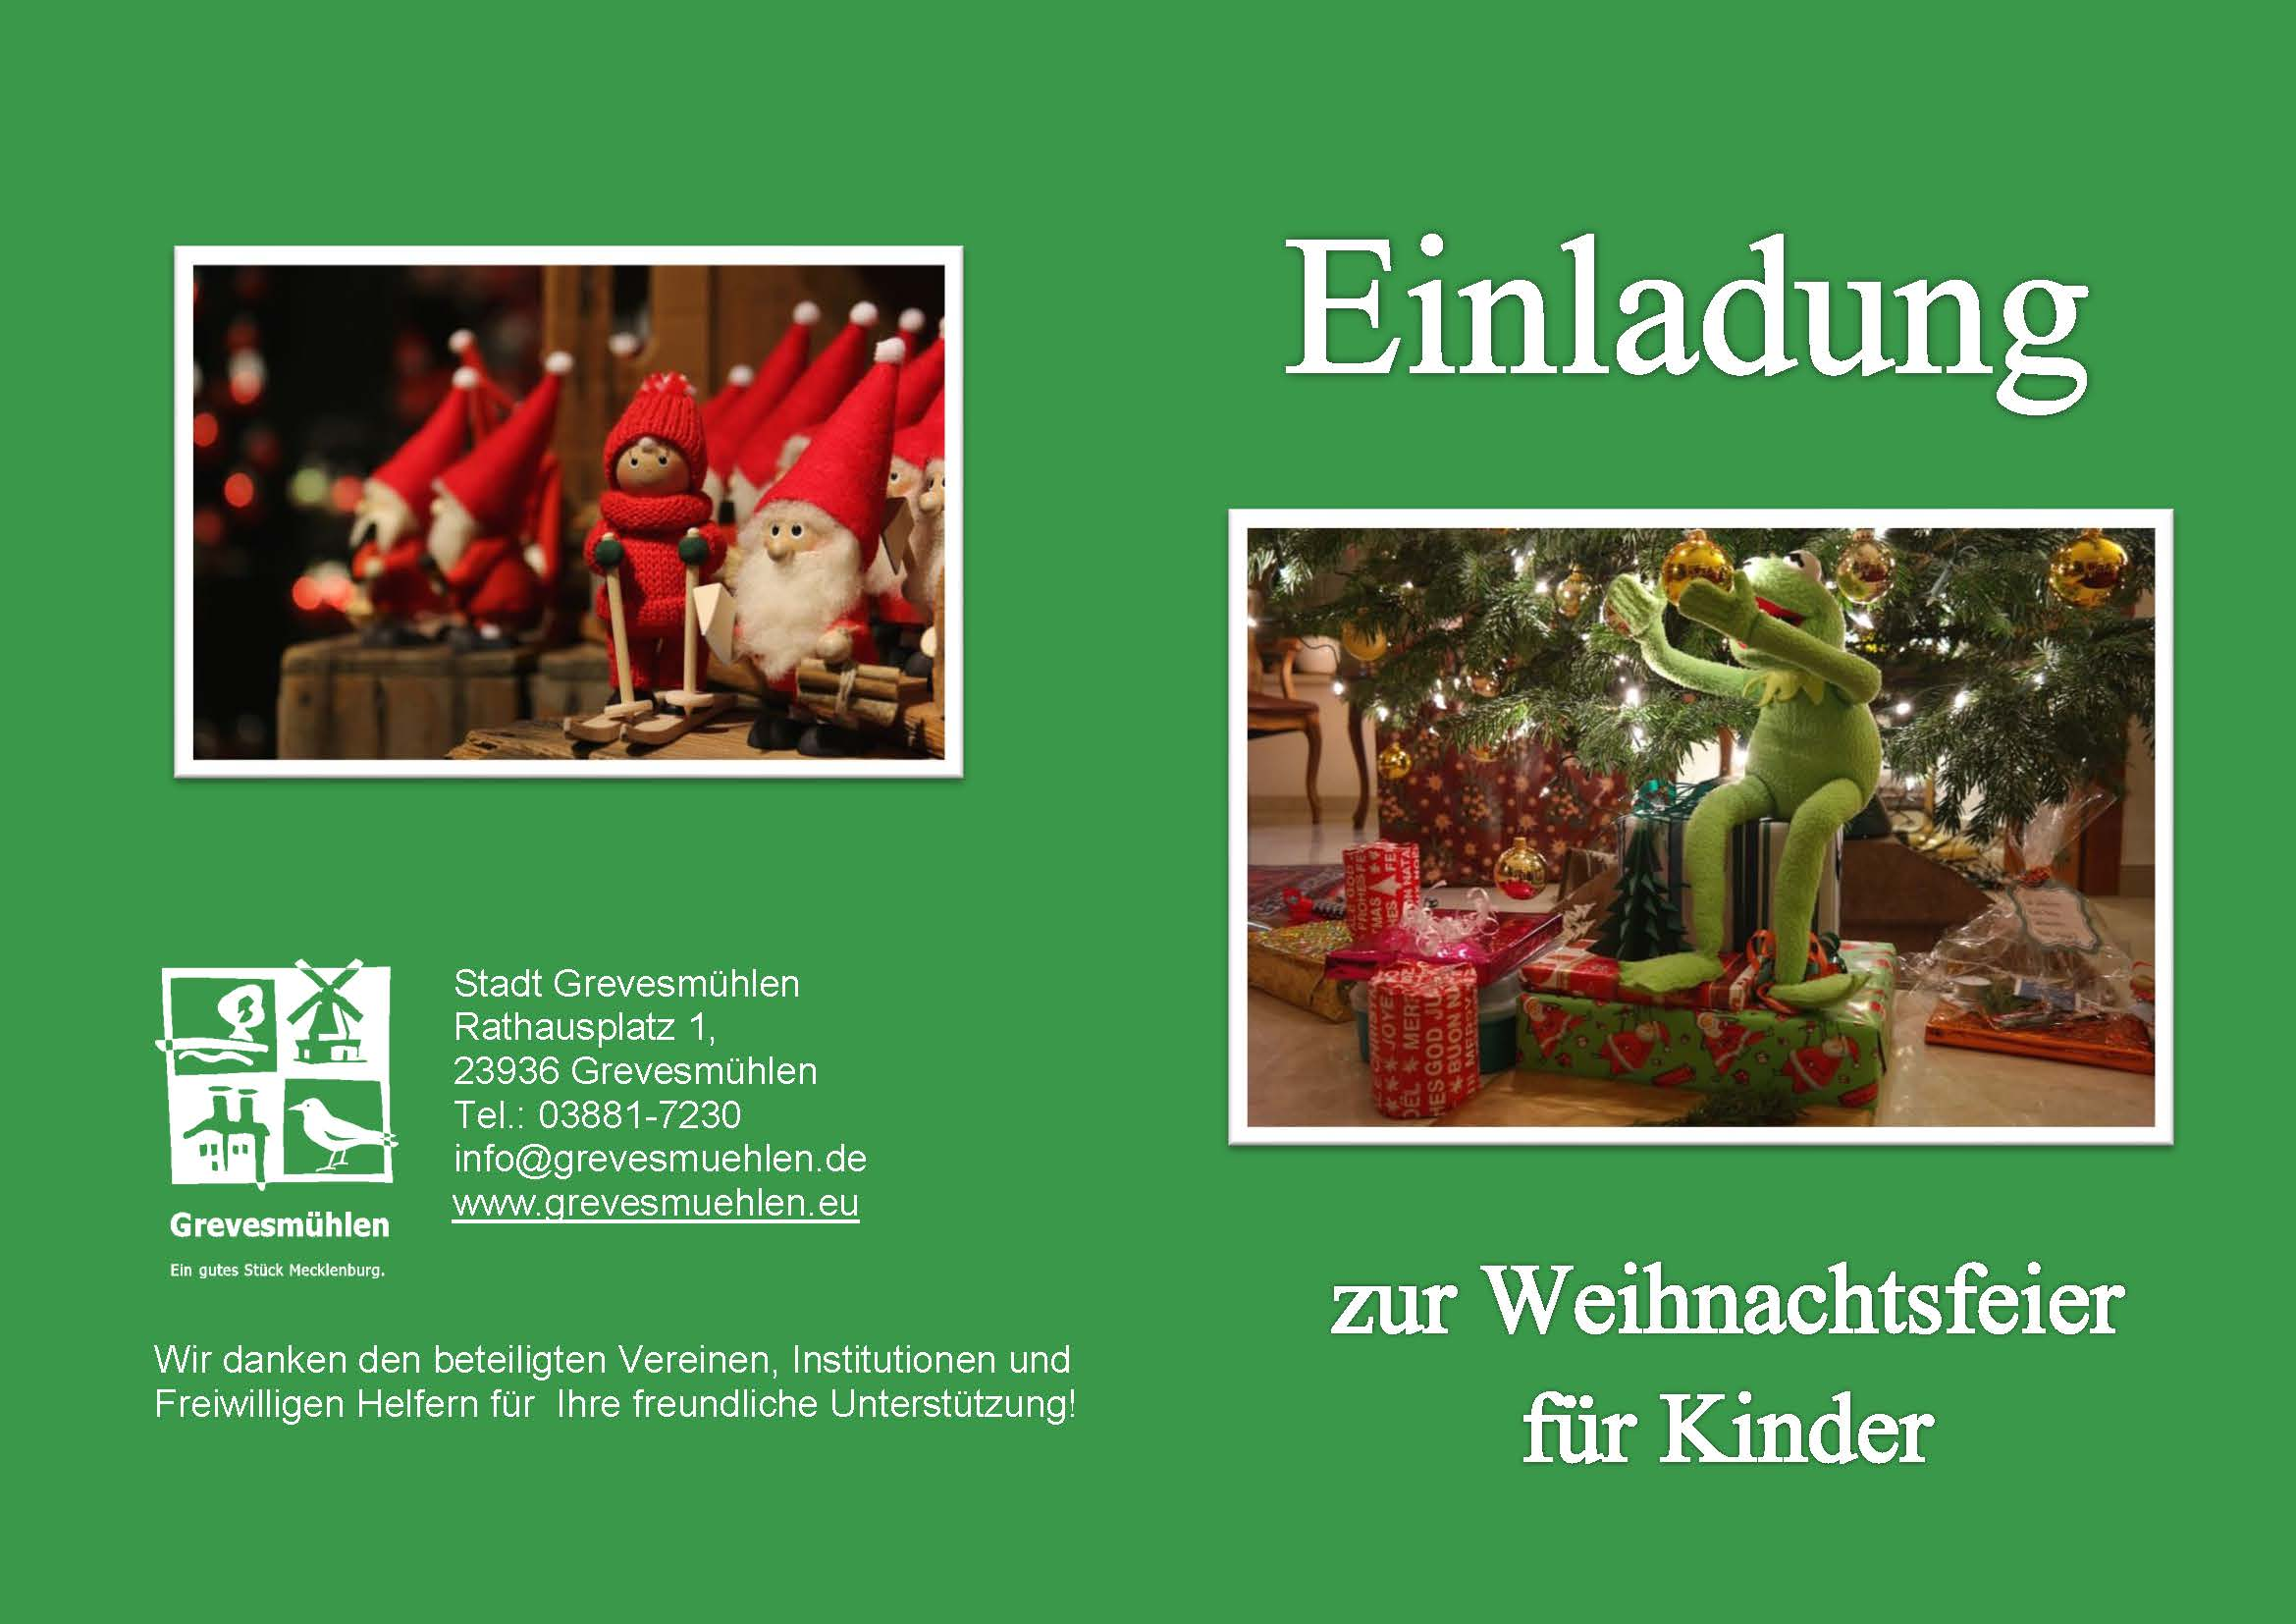 einladung zur weihnachtsfeier f r kinder in grevesm hlen. Black Bedroom Furniture Sets. Home Design Ideas